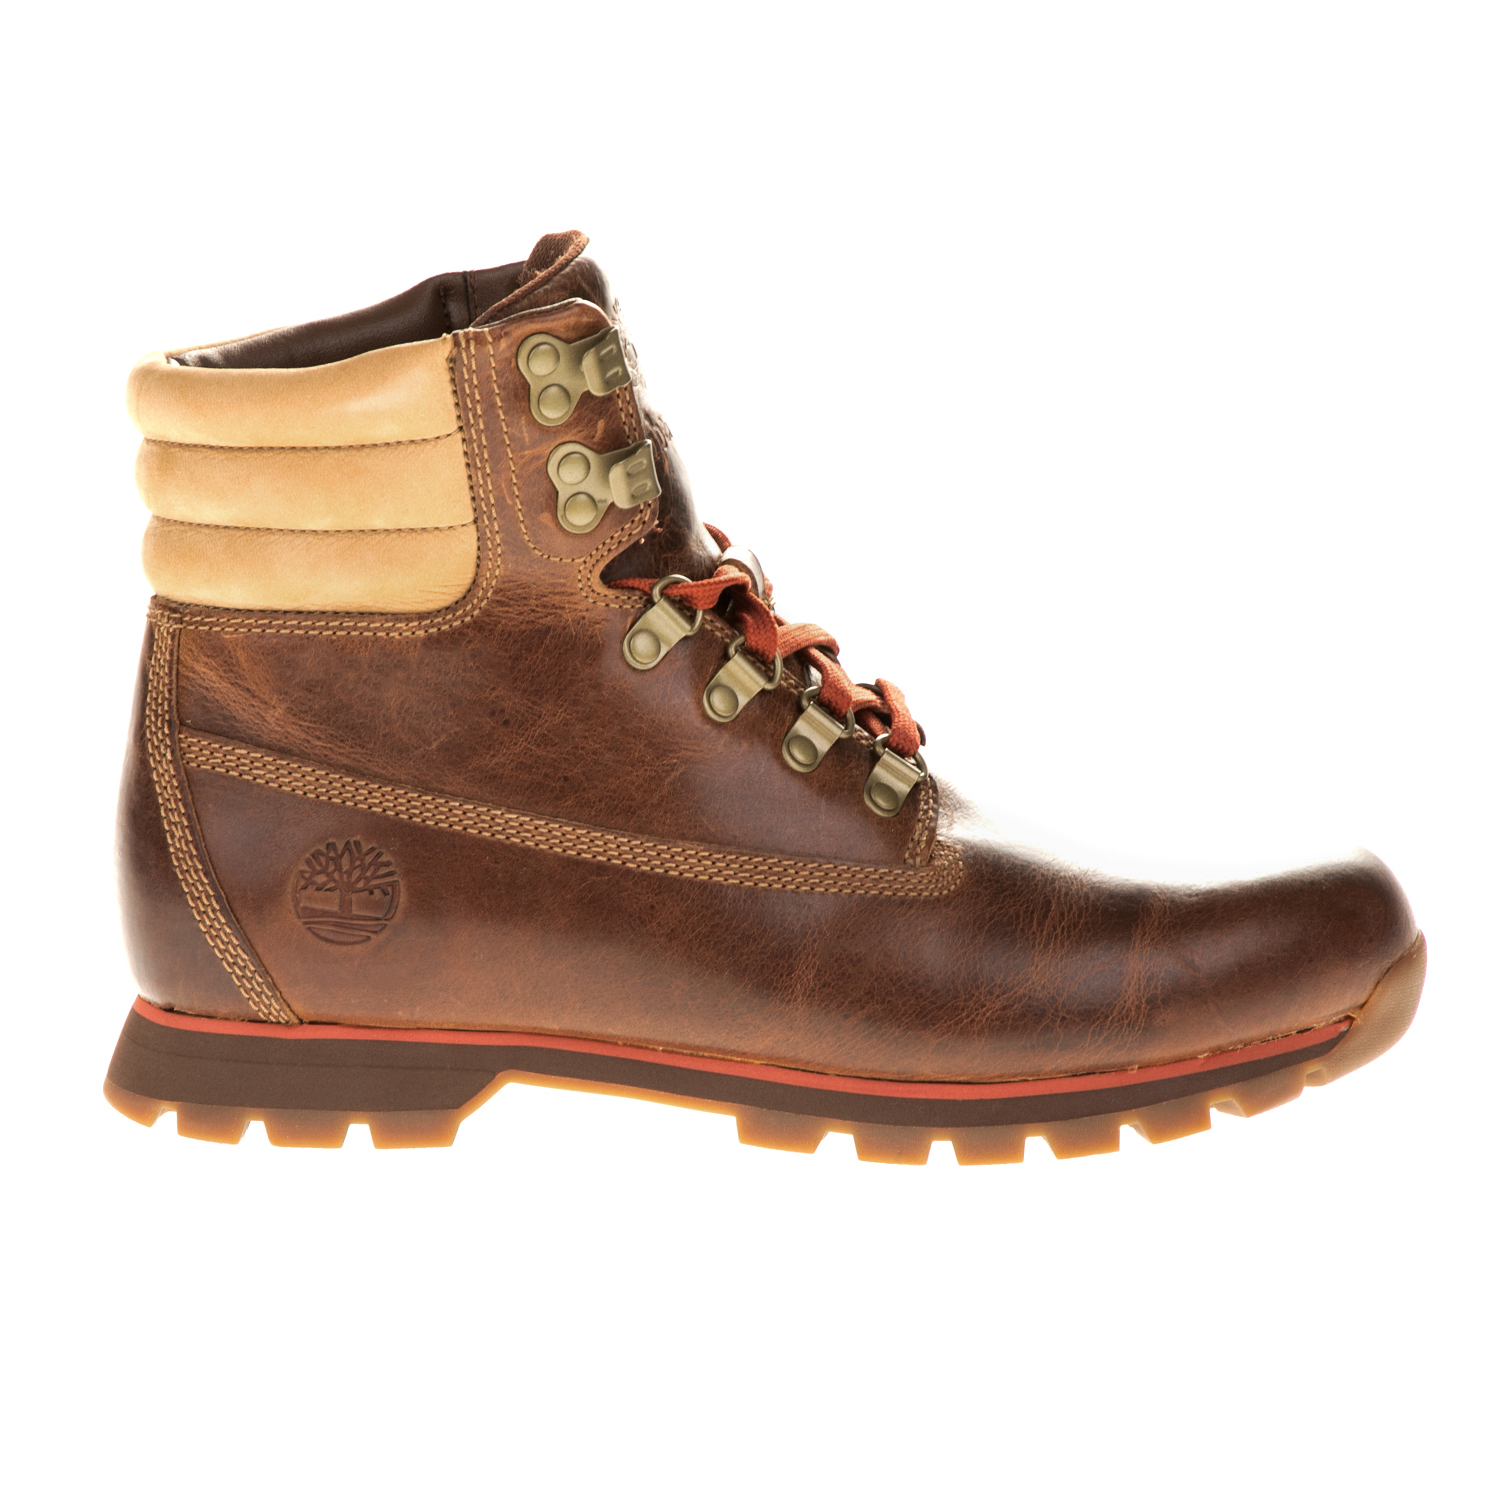 54af543bb58 TIMBERLAND - Ανδρικά μποτάκια TIMBERLAND 6 IN PREMIUM BOOT κίτρινα ...